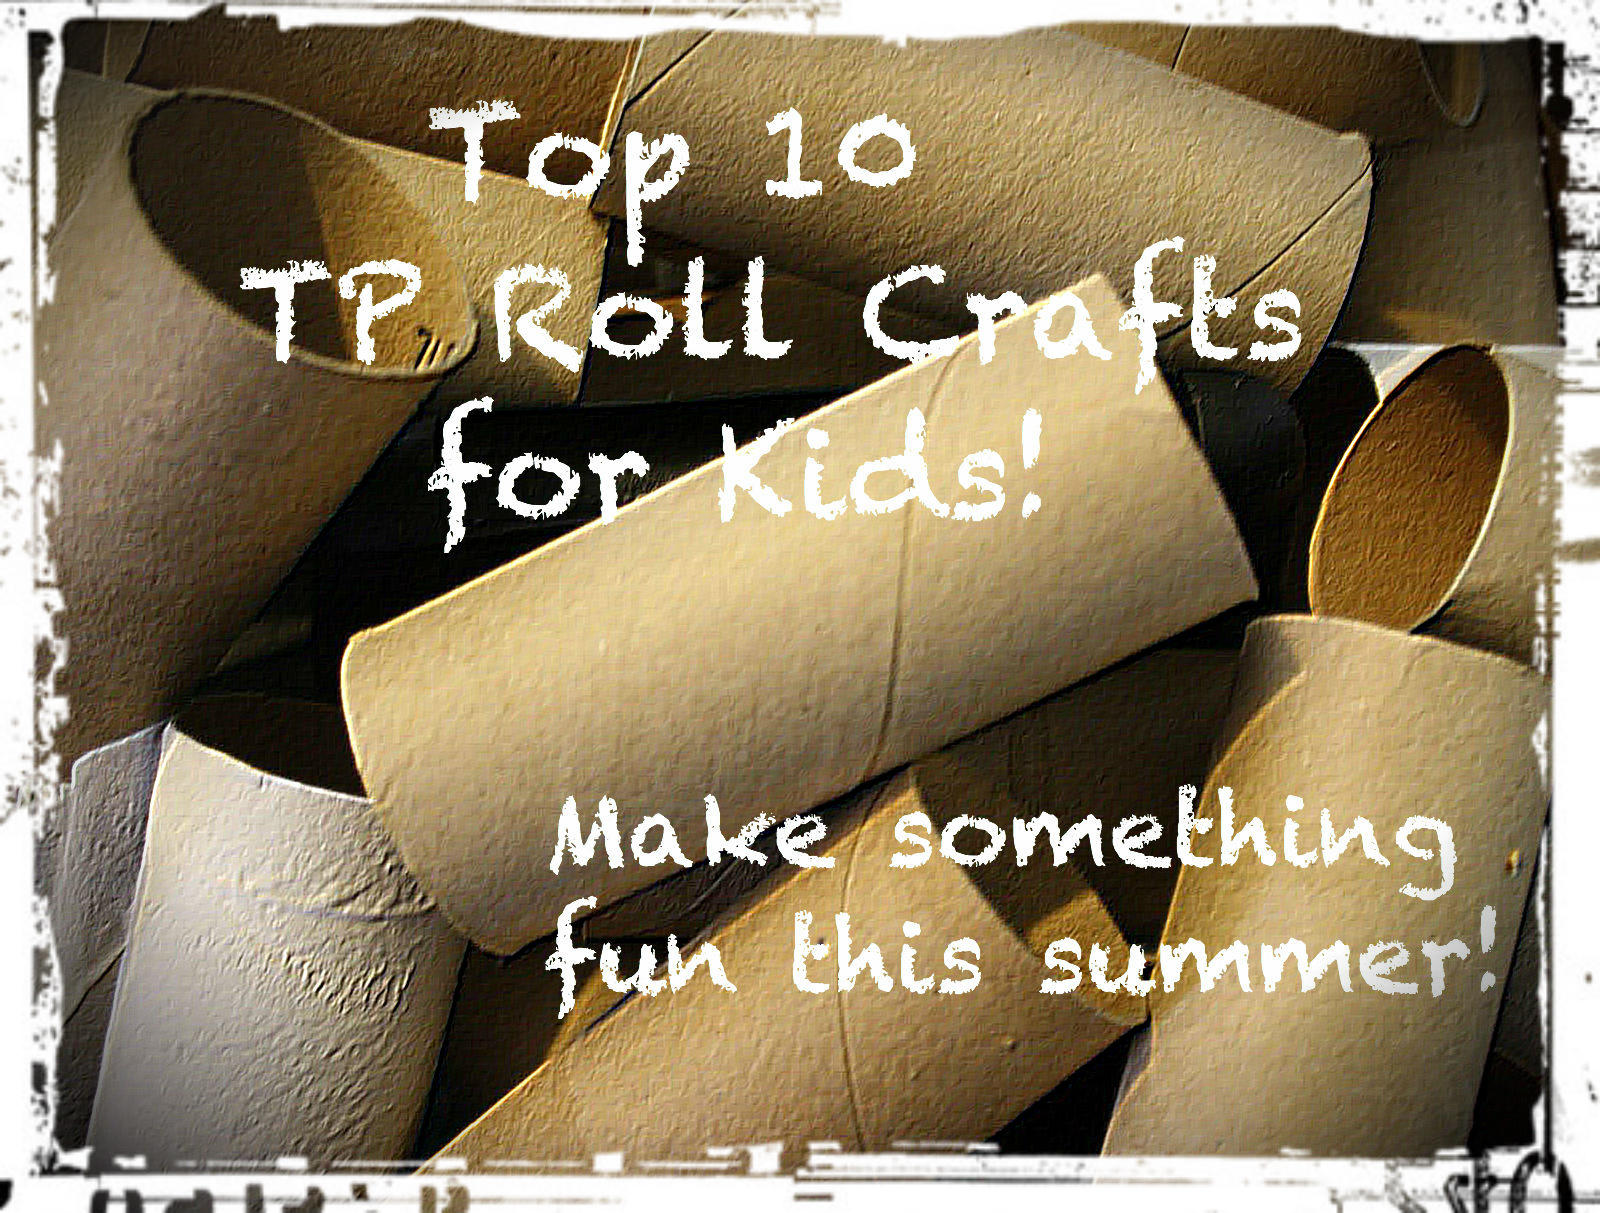 Top 10 Toilet Paper Roll Crafts for Kids! | Reduce, Reuse, UPcycle!